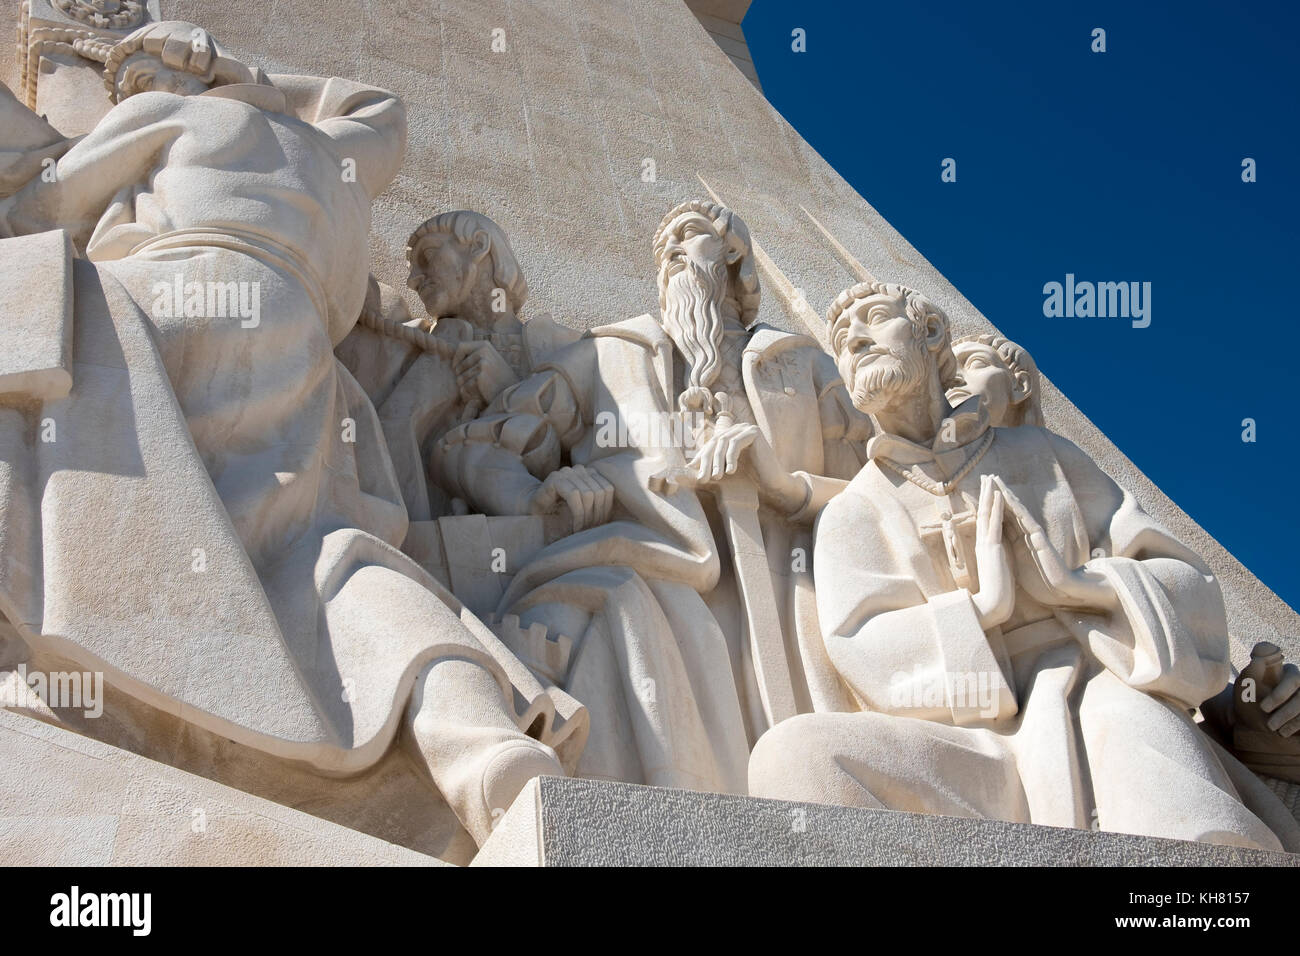 The Padrao dos Descobrimentos, or Monument to the Discoveries, in the Belem district of Lisbon, Portugal. - Stock Image